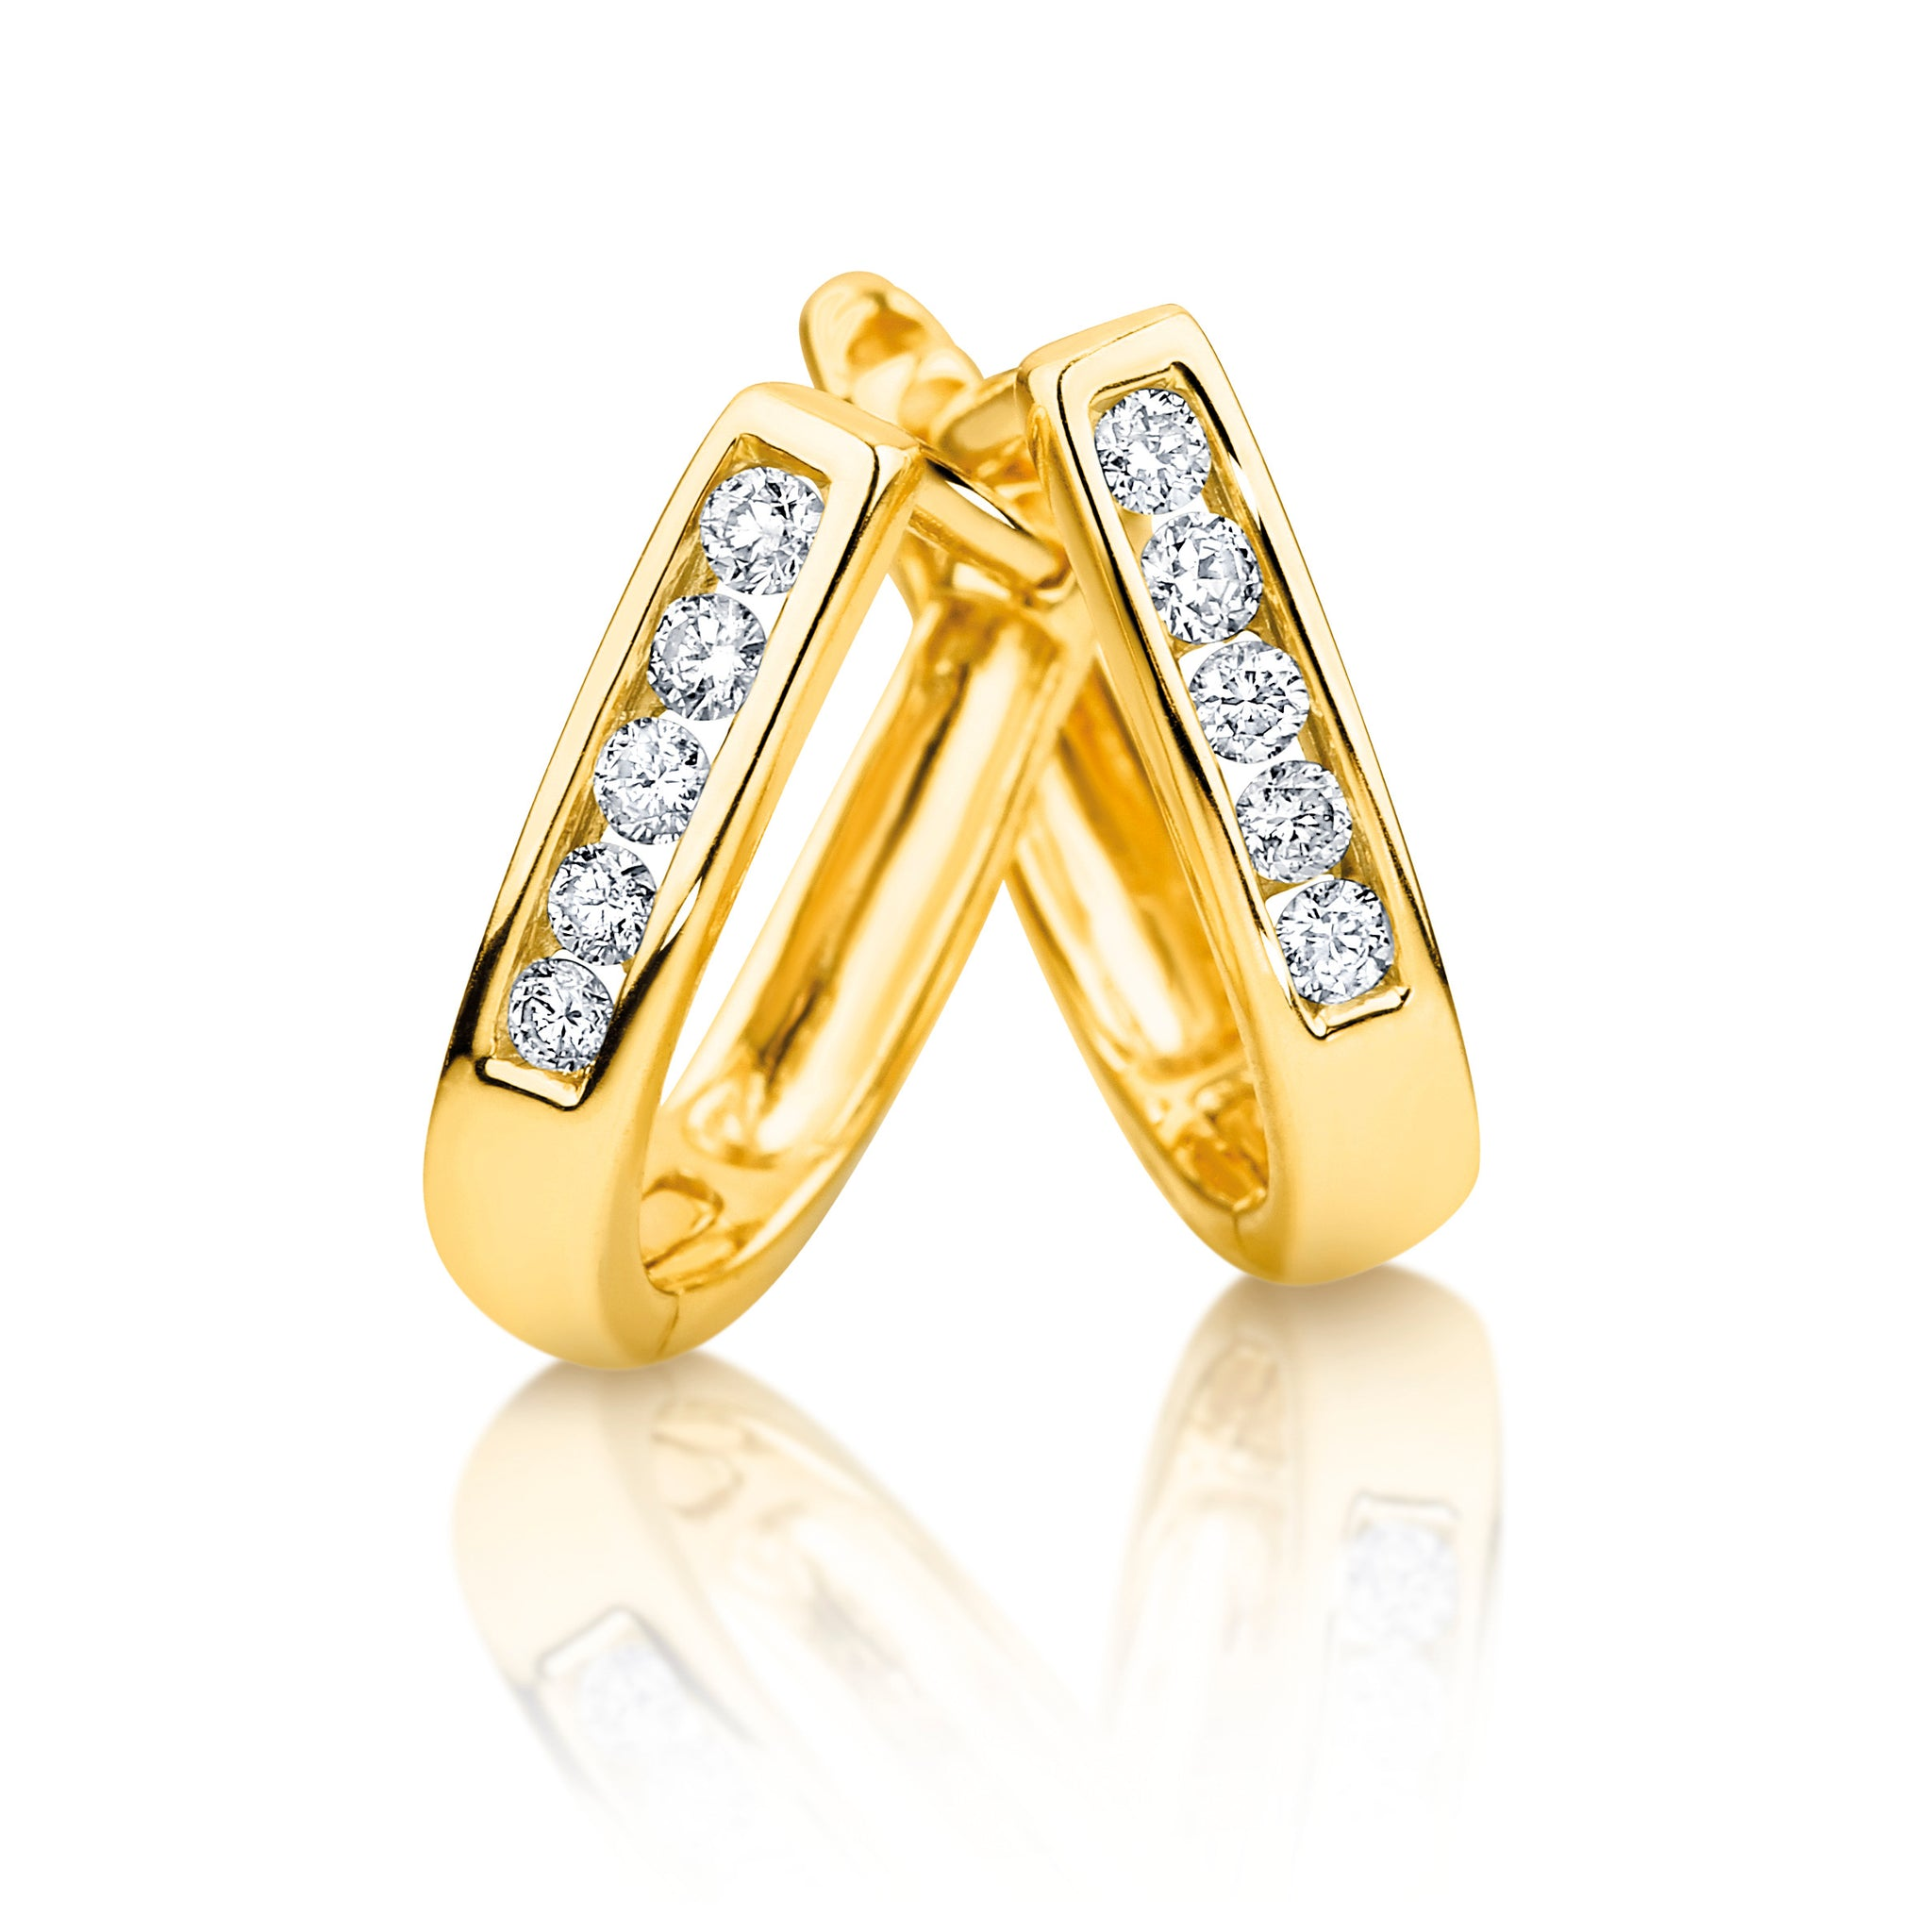 classic diamond huggie earrings, with channel-set diamonds